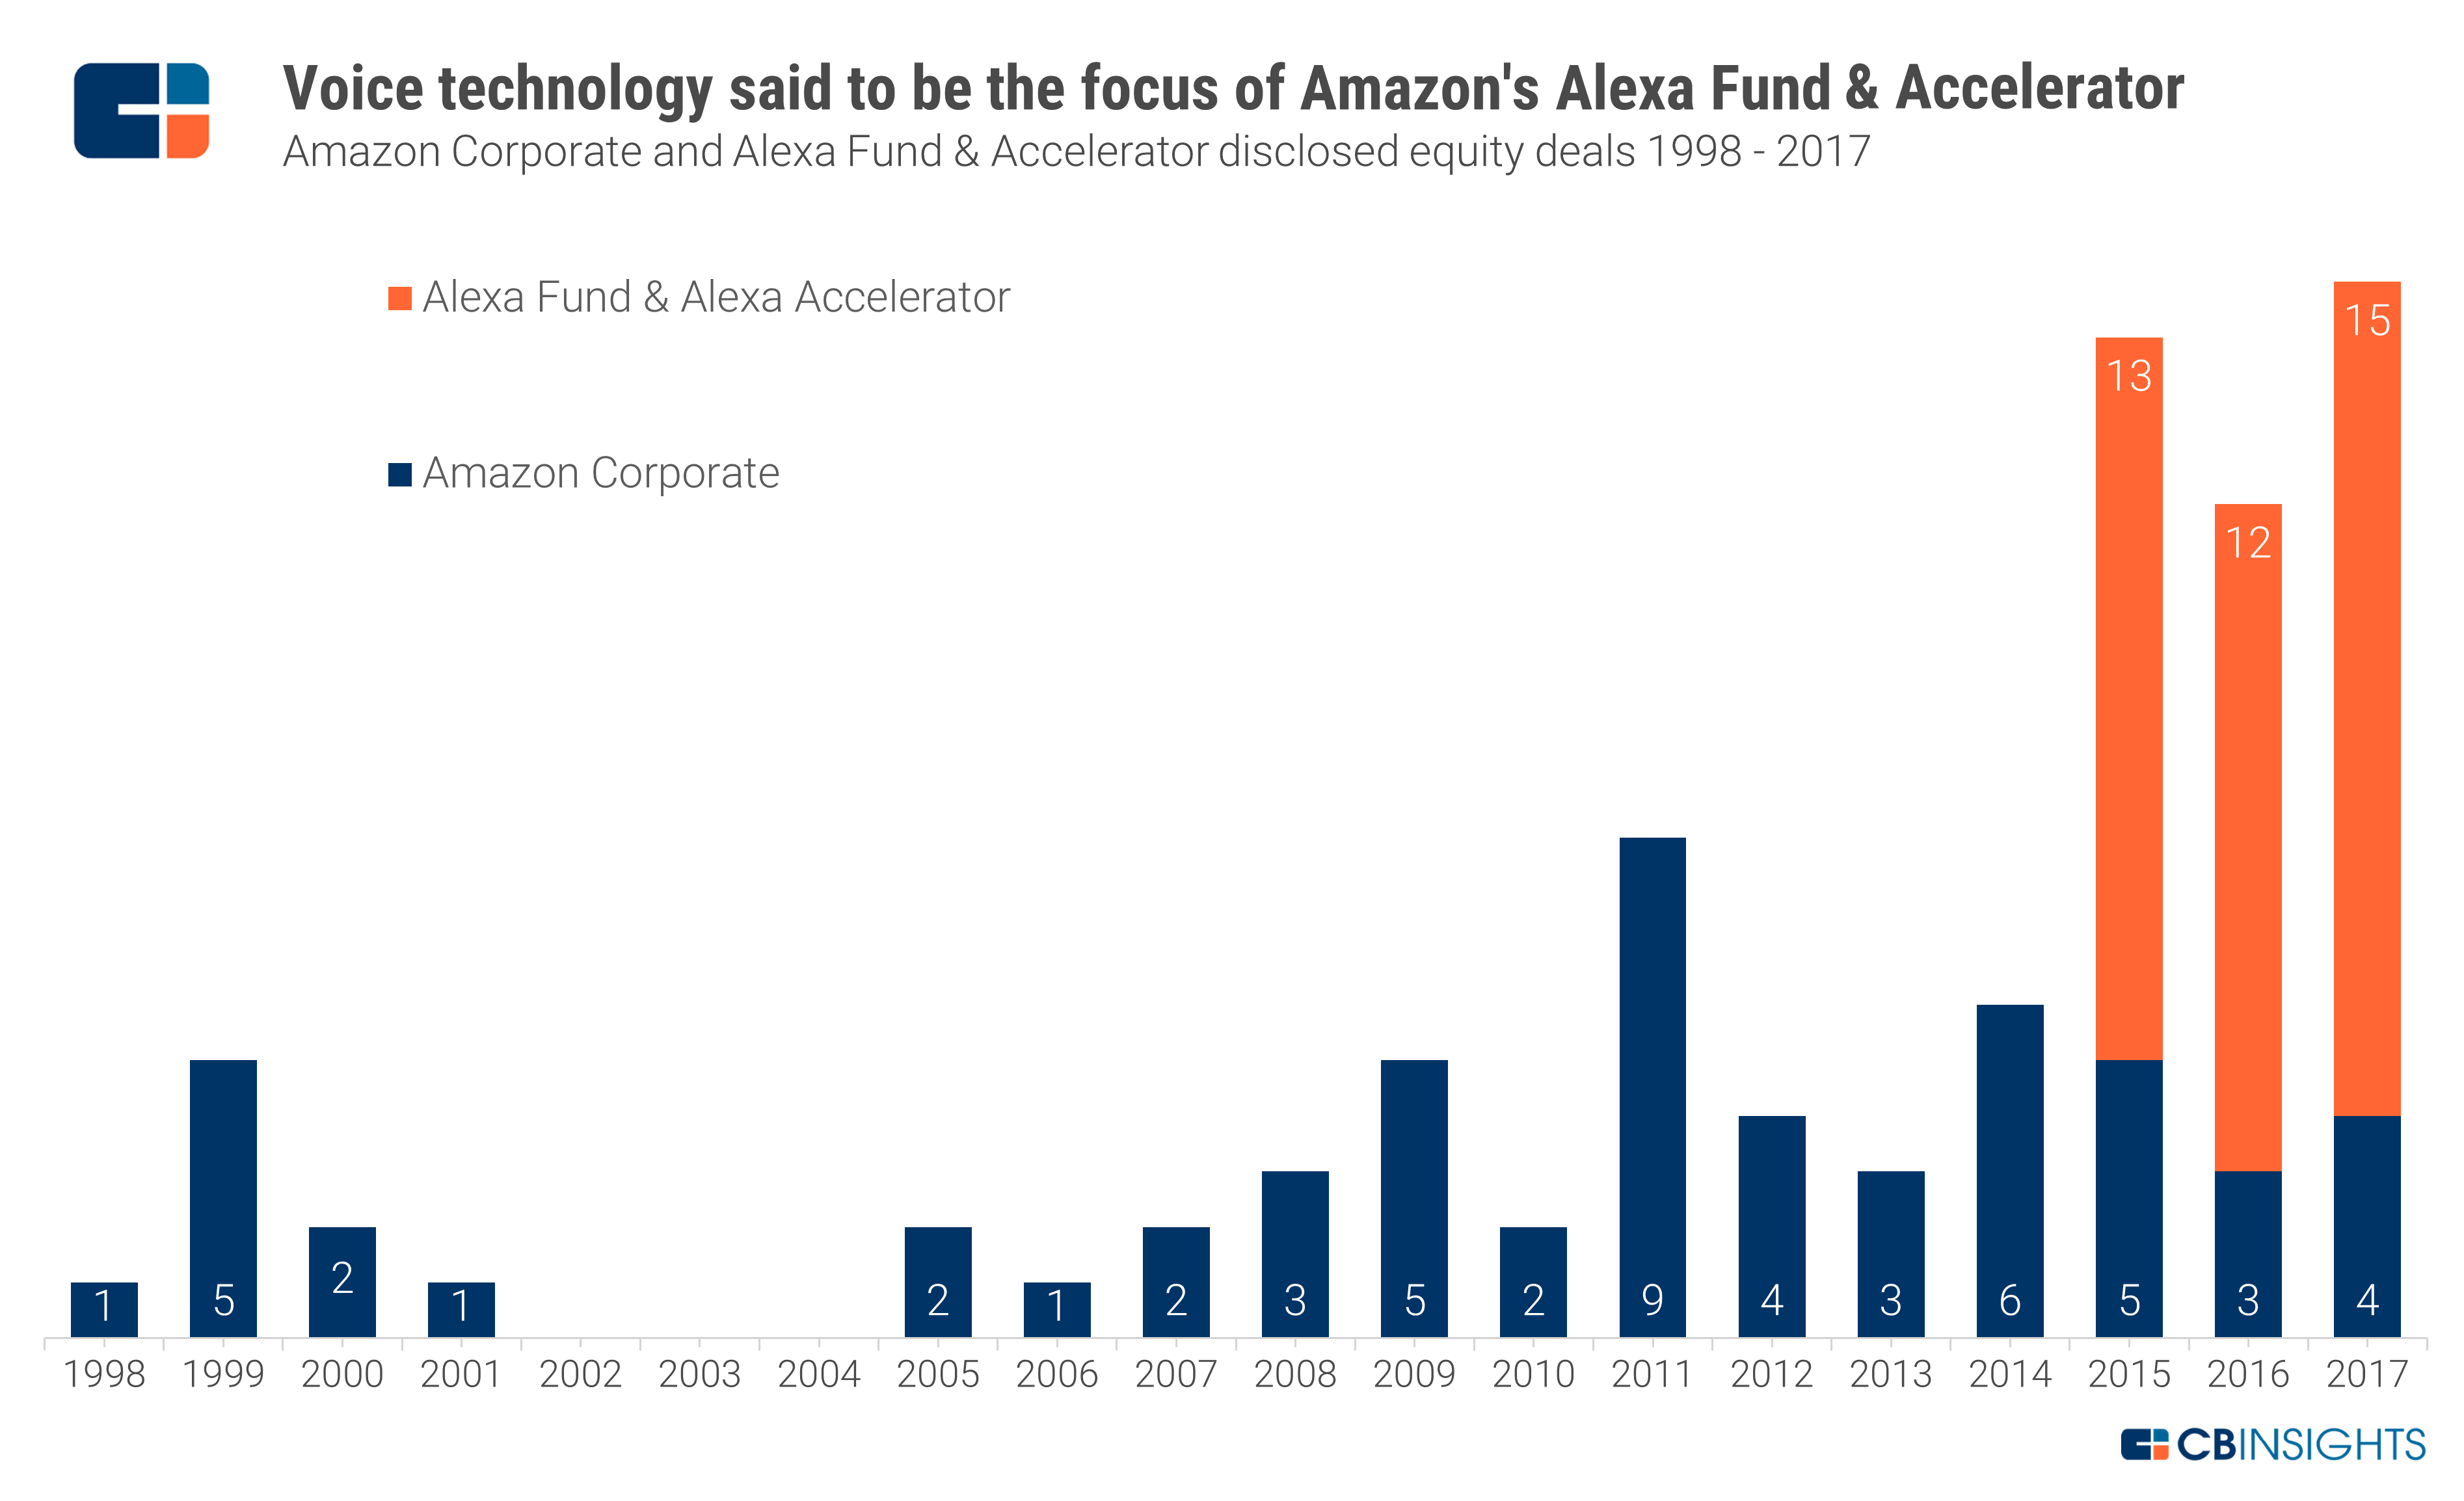 Amazon strategy teardown last year amazons investment activity was bolstered by its alexa accelerator program amazon corporate made 3 investments directly while the alexa fund fandeluxe Gallery